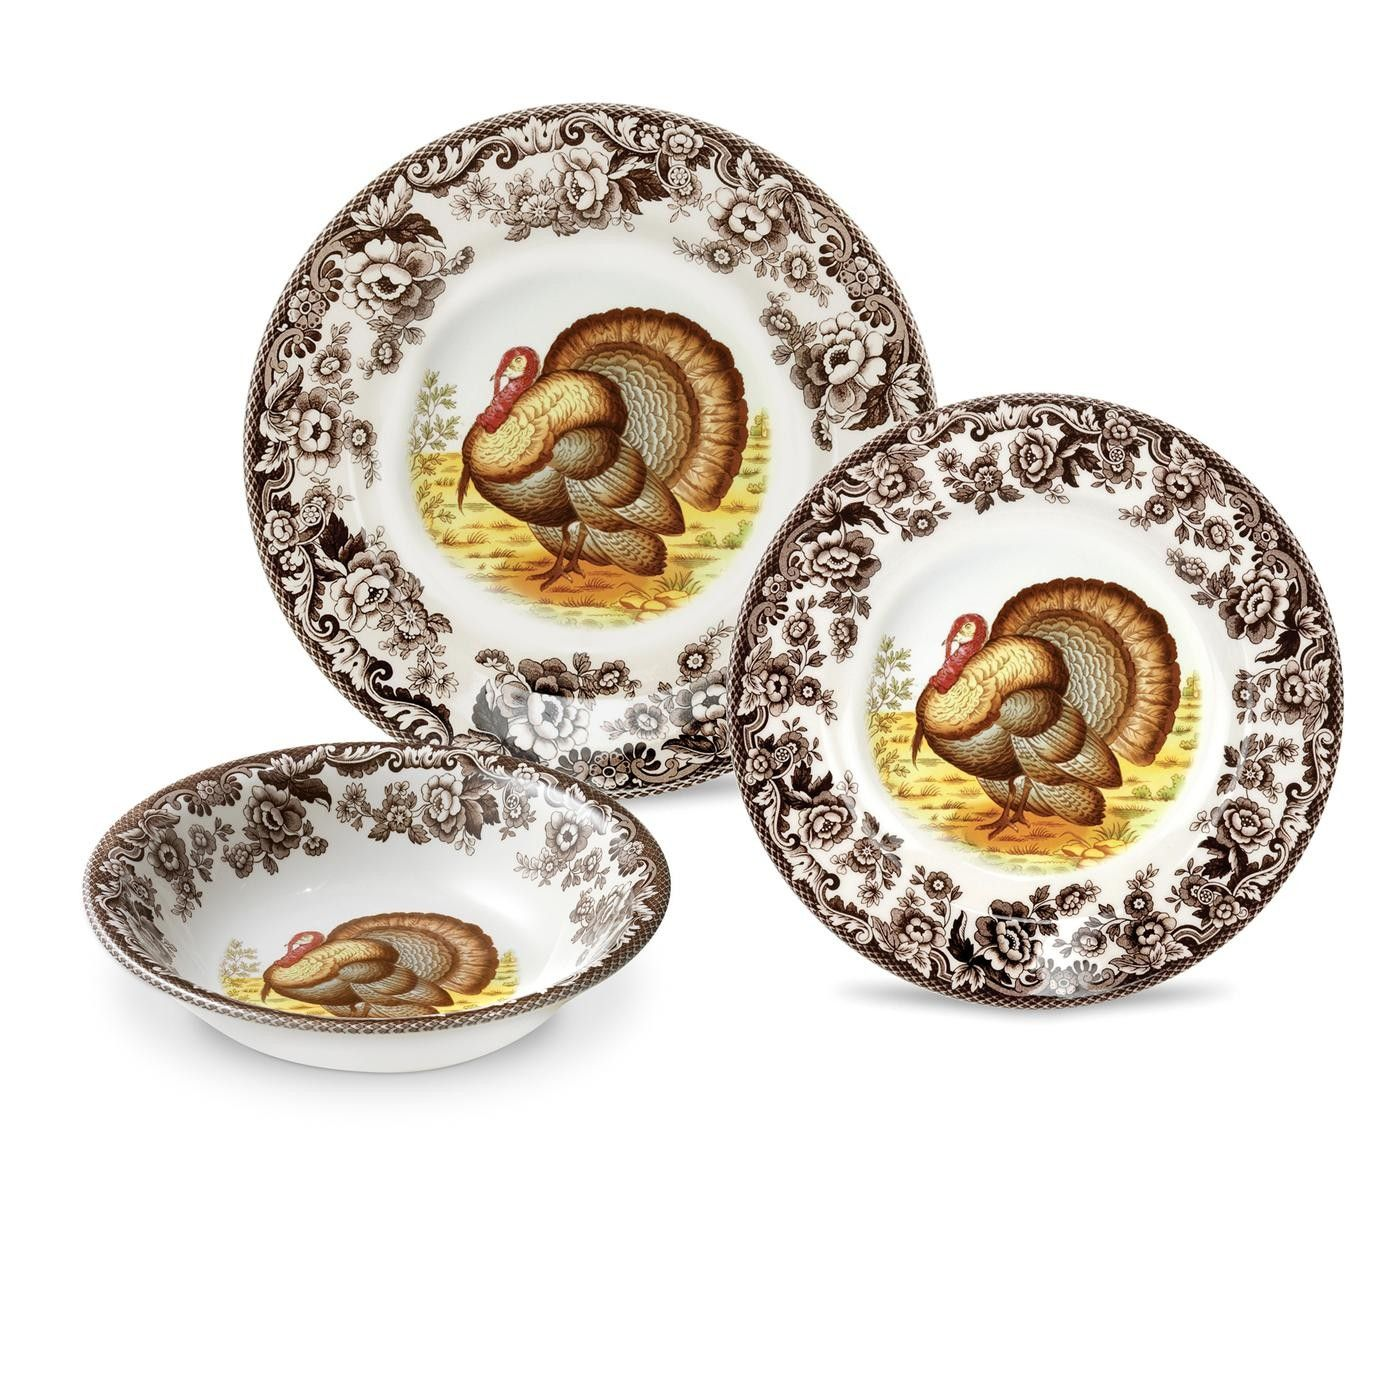 Spode Woodland Turkey plates and serving pieces are the perfect touch for your #Thanksgiving table  sc 1 st  Pinterest & Spode Woodland Turkey plates and serving pieces are the perfect ...